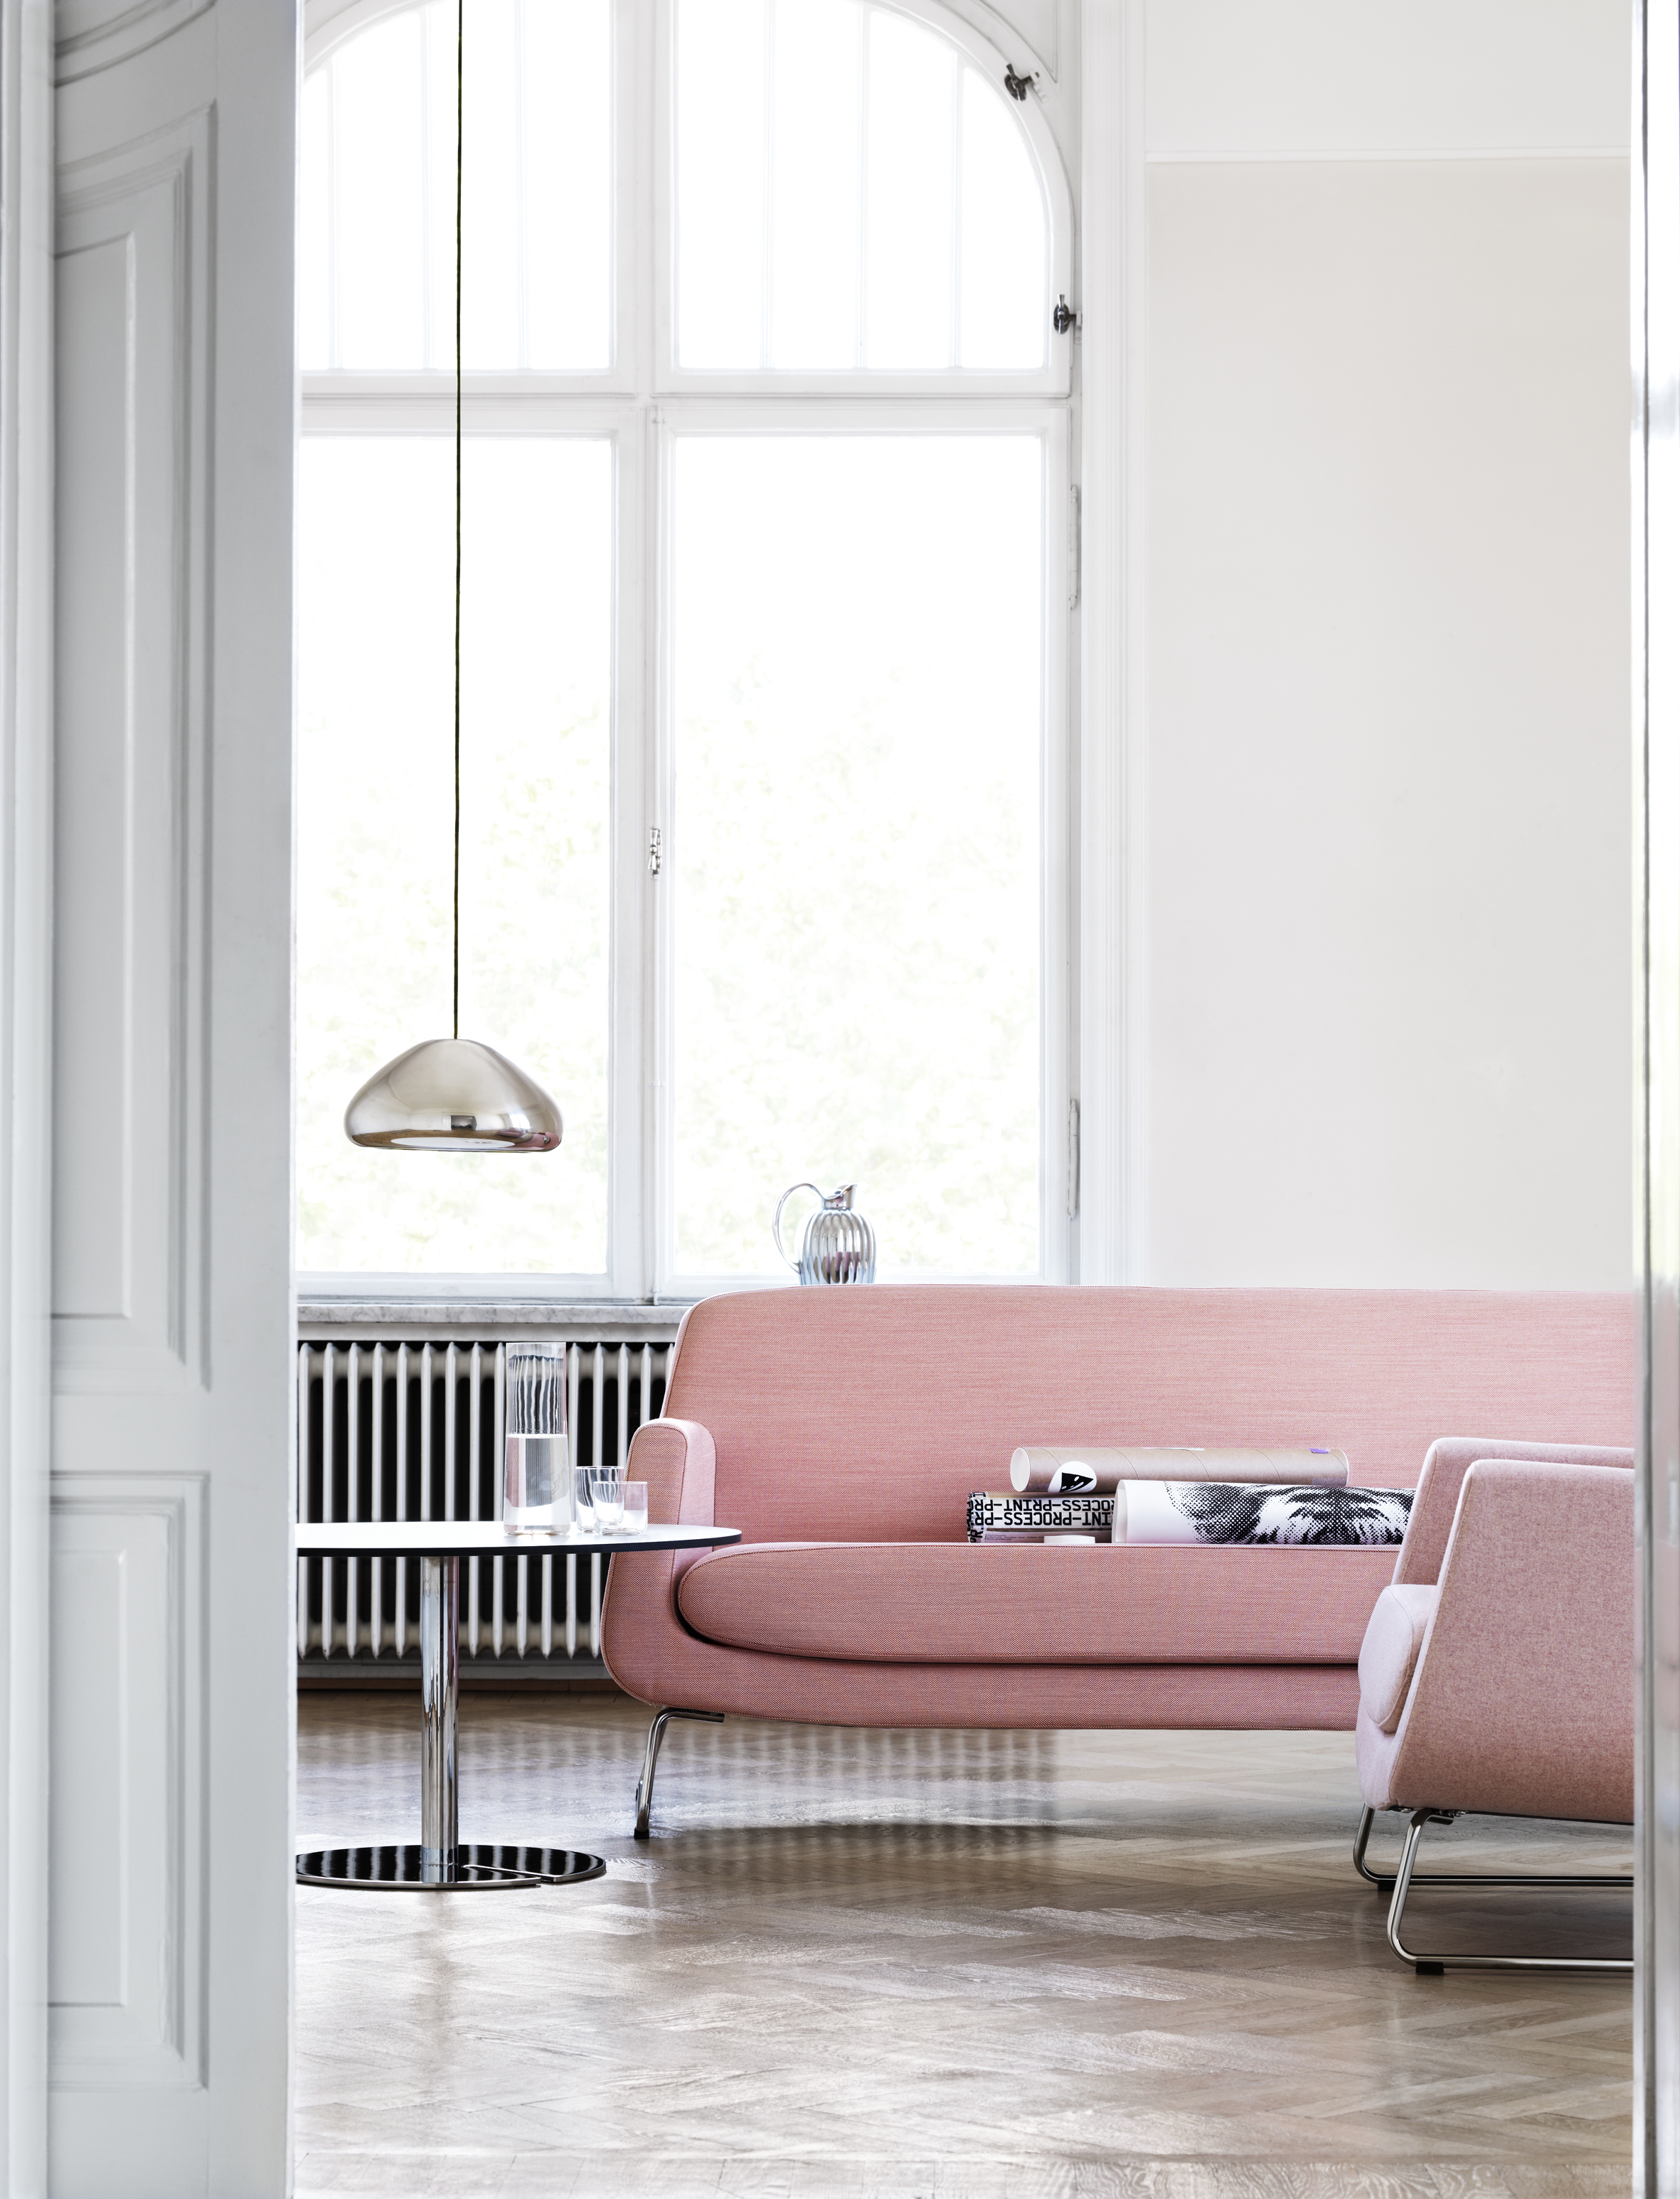 Mood Board Best Ways to Use Pale Pink in Your Home Decor 1